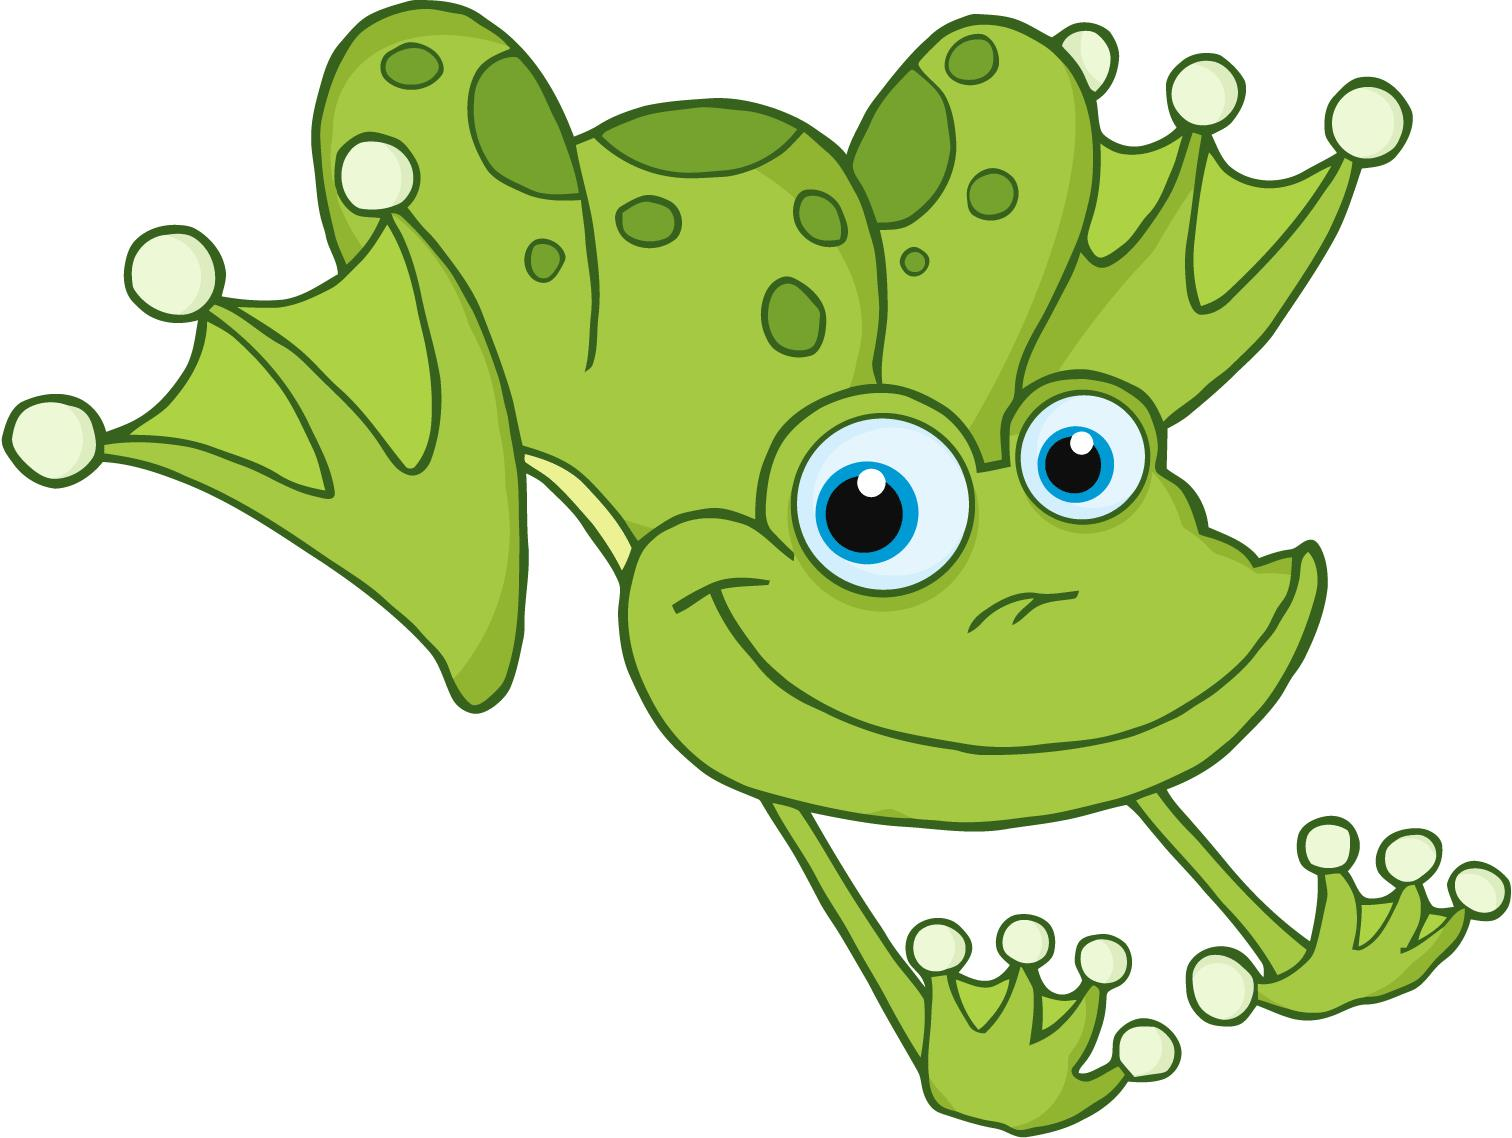 42 Pictures Of Frogs For Kids Free Cliparts That You Can Download To